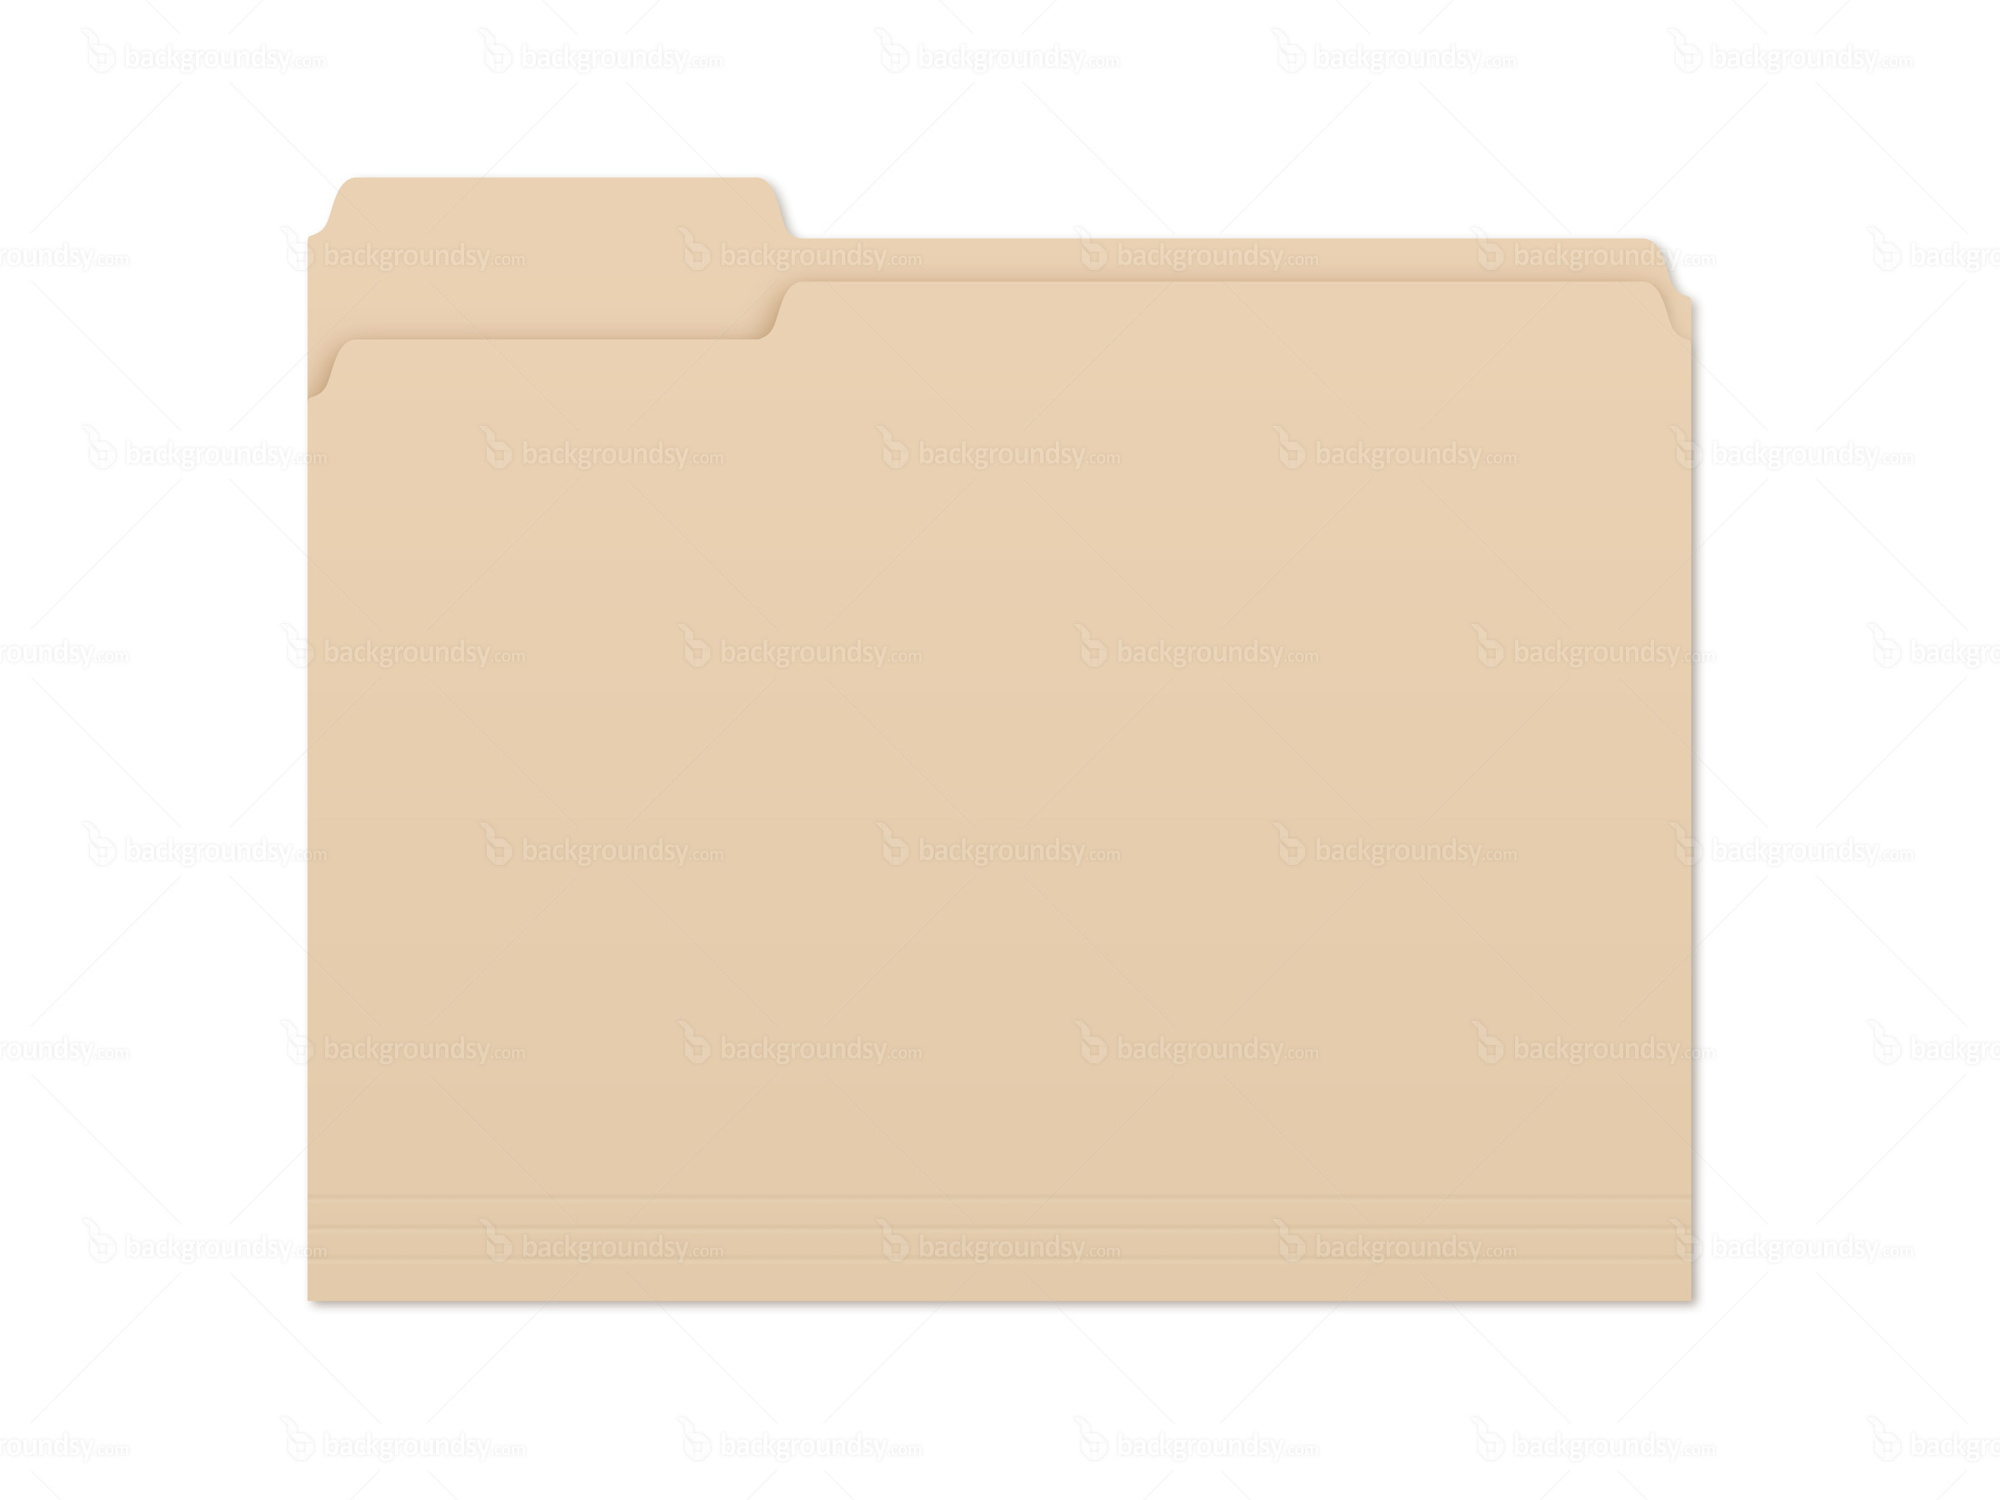 photoshop document yellow paper icon